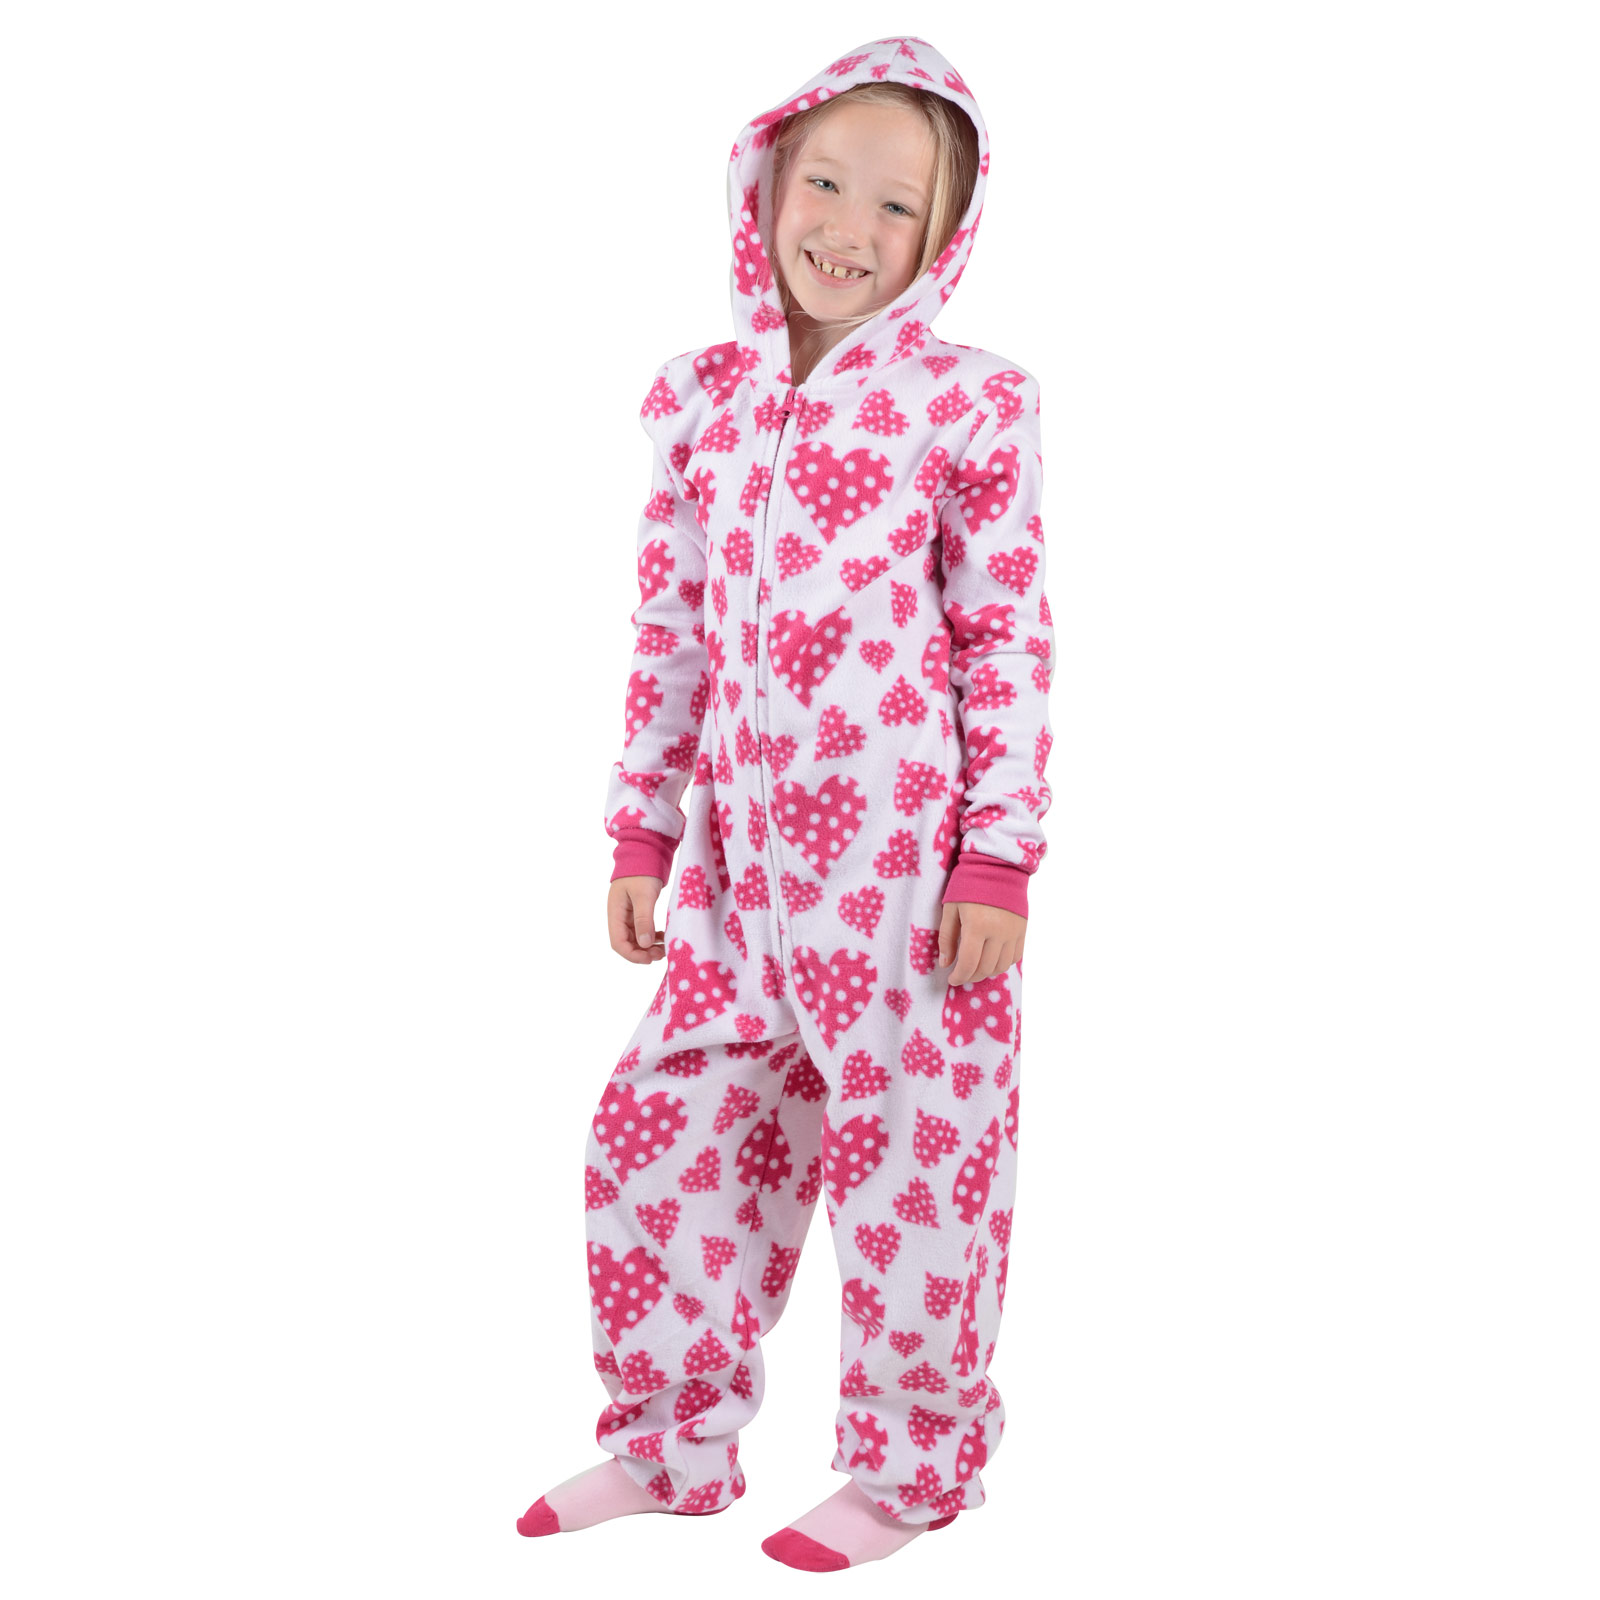 Footed pajamas aren't just for kids. Our comfy footies have been much loved by men and women season after season. Choose the perfect footie from our collection of flannels, fleece and jersey in solids, plaids and prints. Our matching family footies are always fun for chilly mornings and nights and make the perfect festive gift.